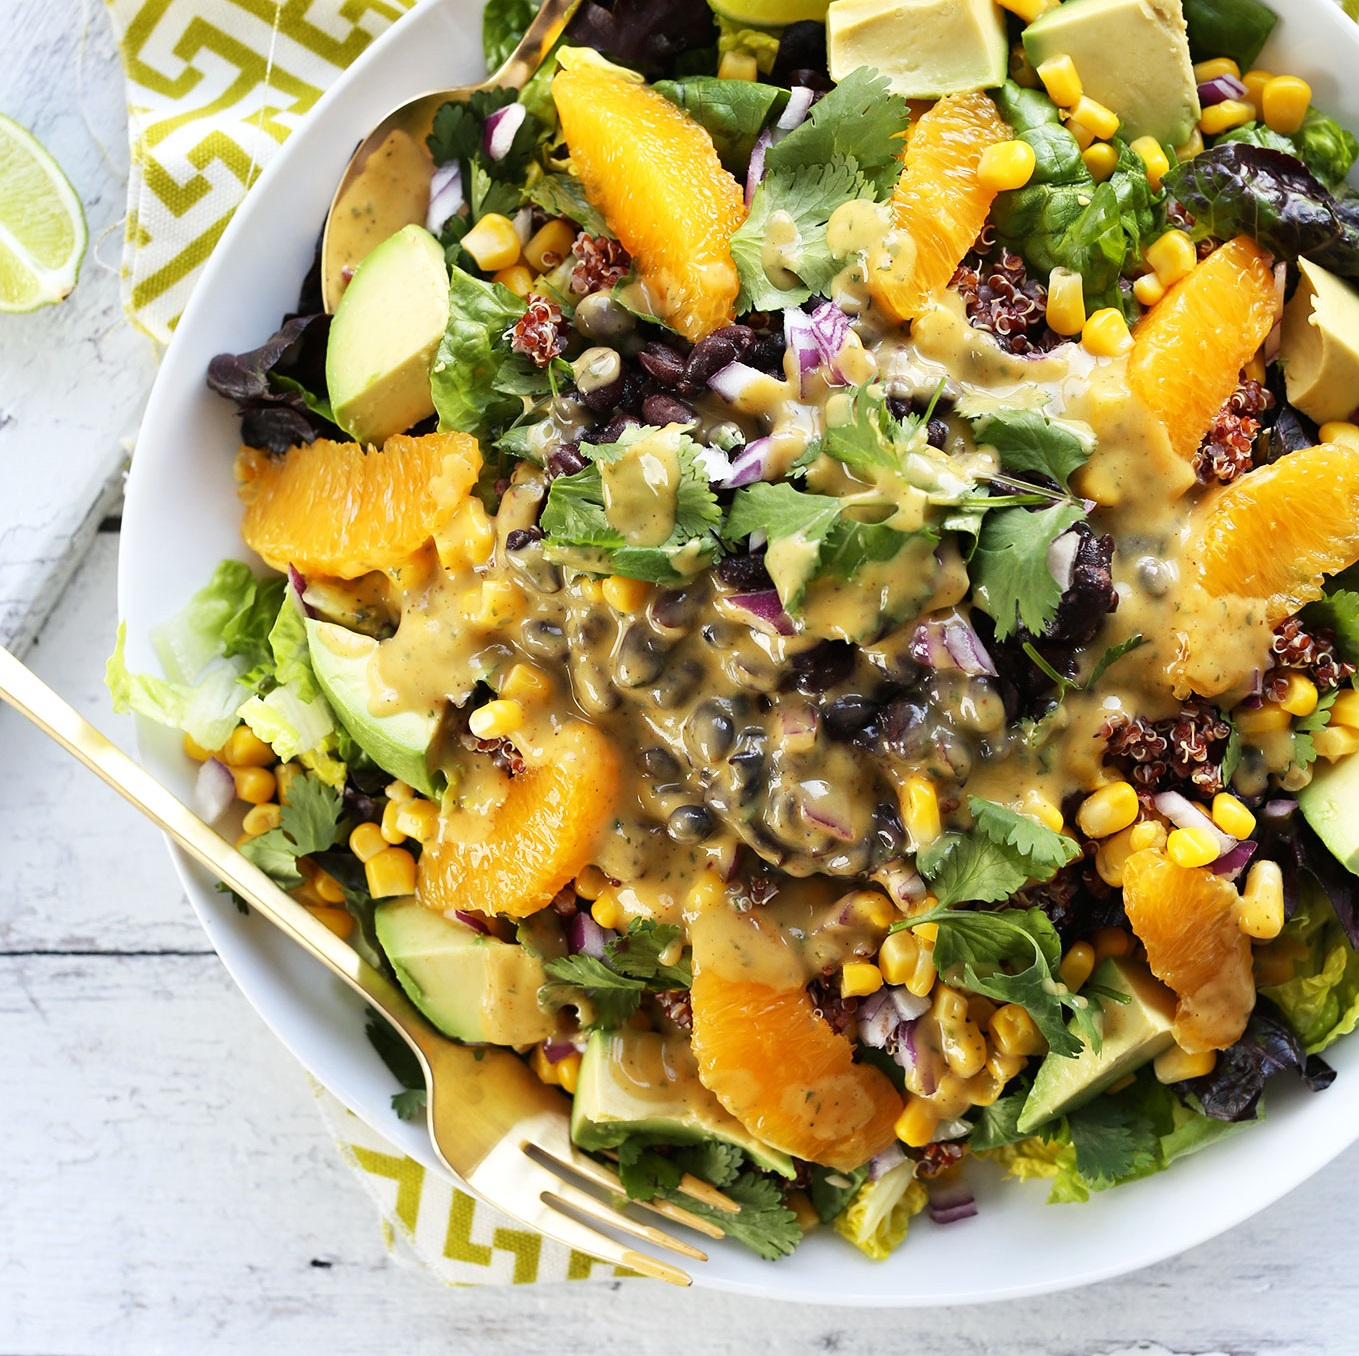 HEALTHY-Vegan-Mexican-Quinoa-Salad-with-Black-Beans-Corn-Avocado-and-a-Creamy-Orange-Chili-Dressing-vegan-.jpg